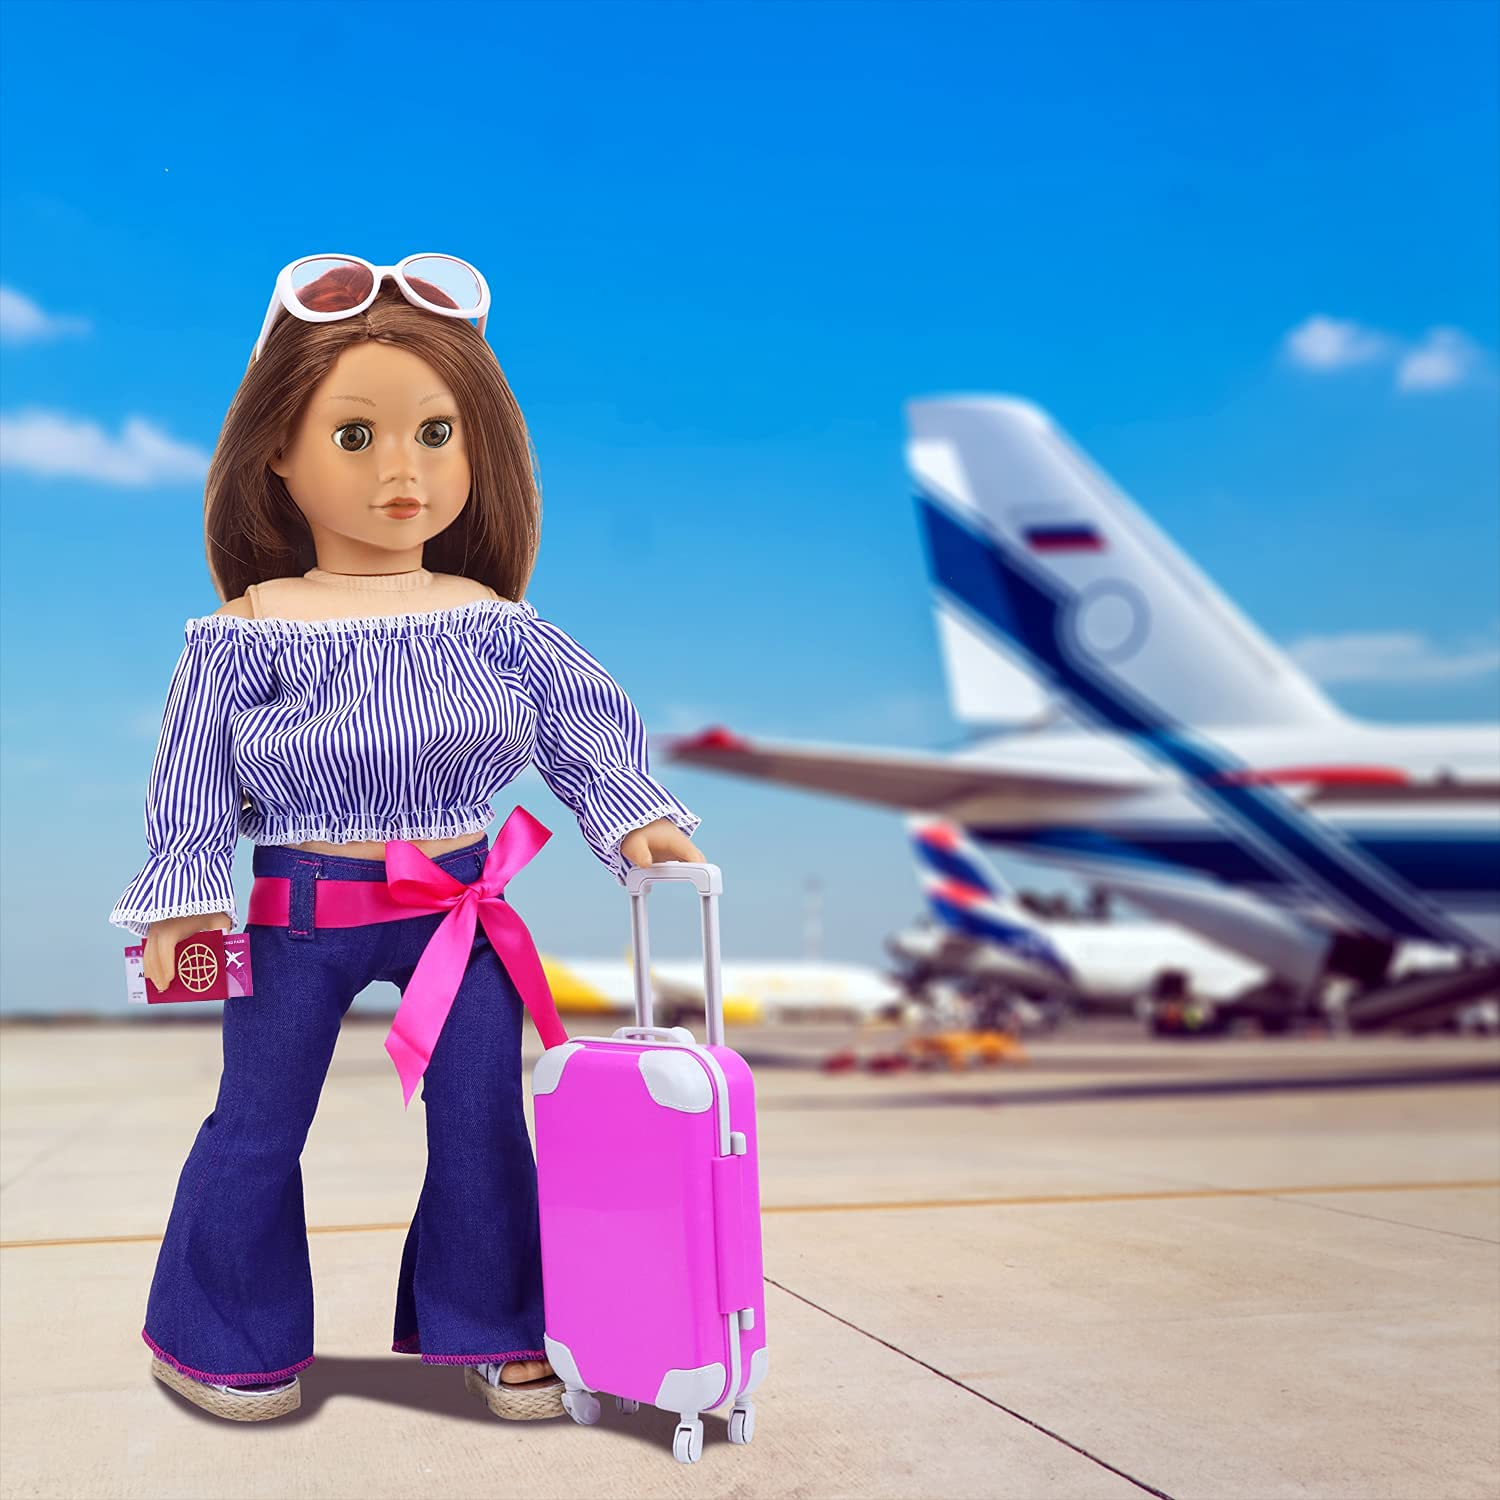 """ZITA ELEMENT 16 Pcs American 18 Inch Doll Suitcase Luggage Travel Set for Girl 18"""" Doll Travel Carrier Storage, Including Suitcase Pillow Blindfold Sunglasses Camera Computer Cell Phone Ipad,ect"""